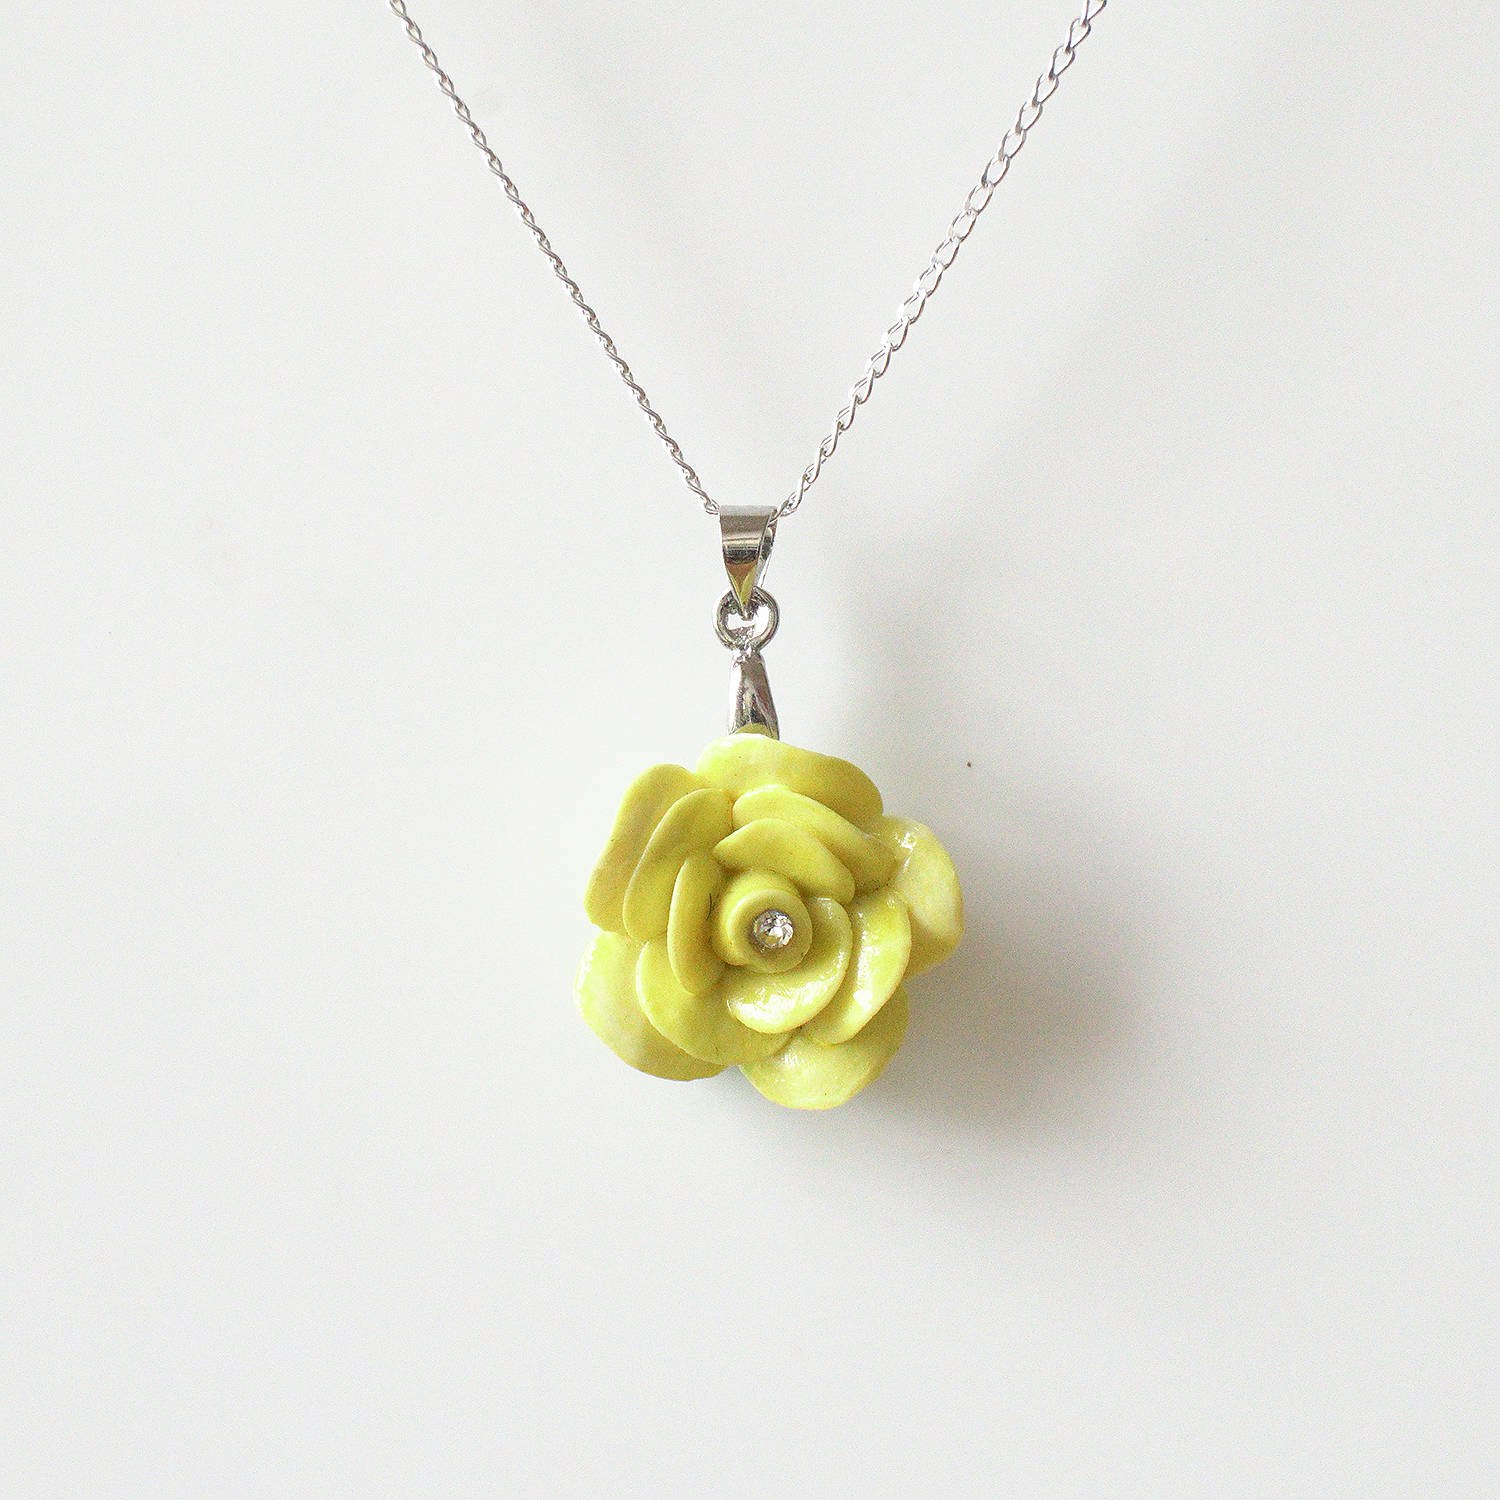 Porcelain yellow rose pendant with sterling silver necklace zoom mozeypictures Image collections